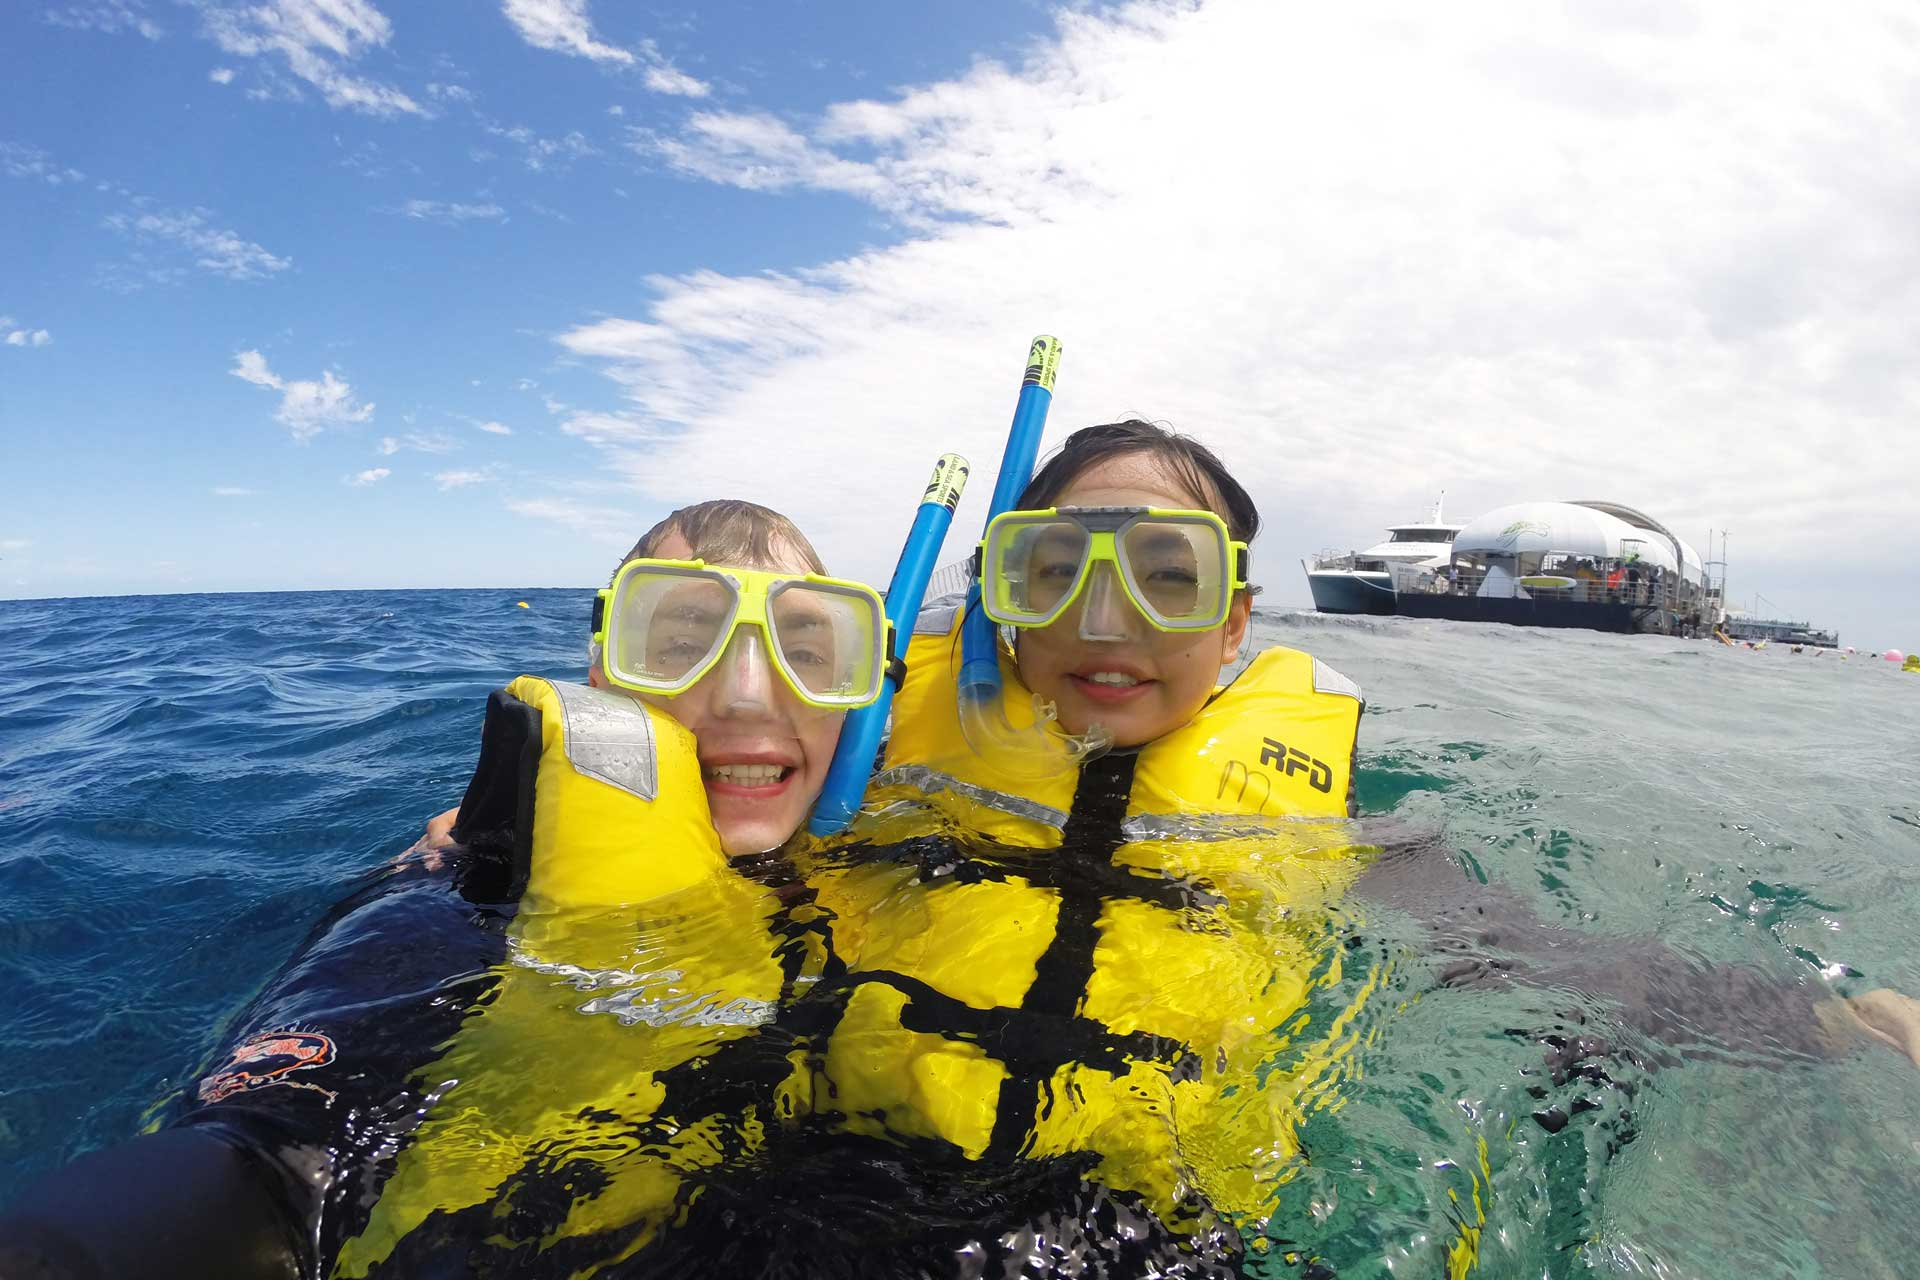 Mattias and Leonie snorkelling at the Great Barrier Reef